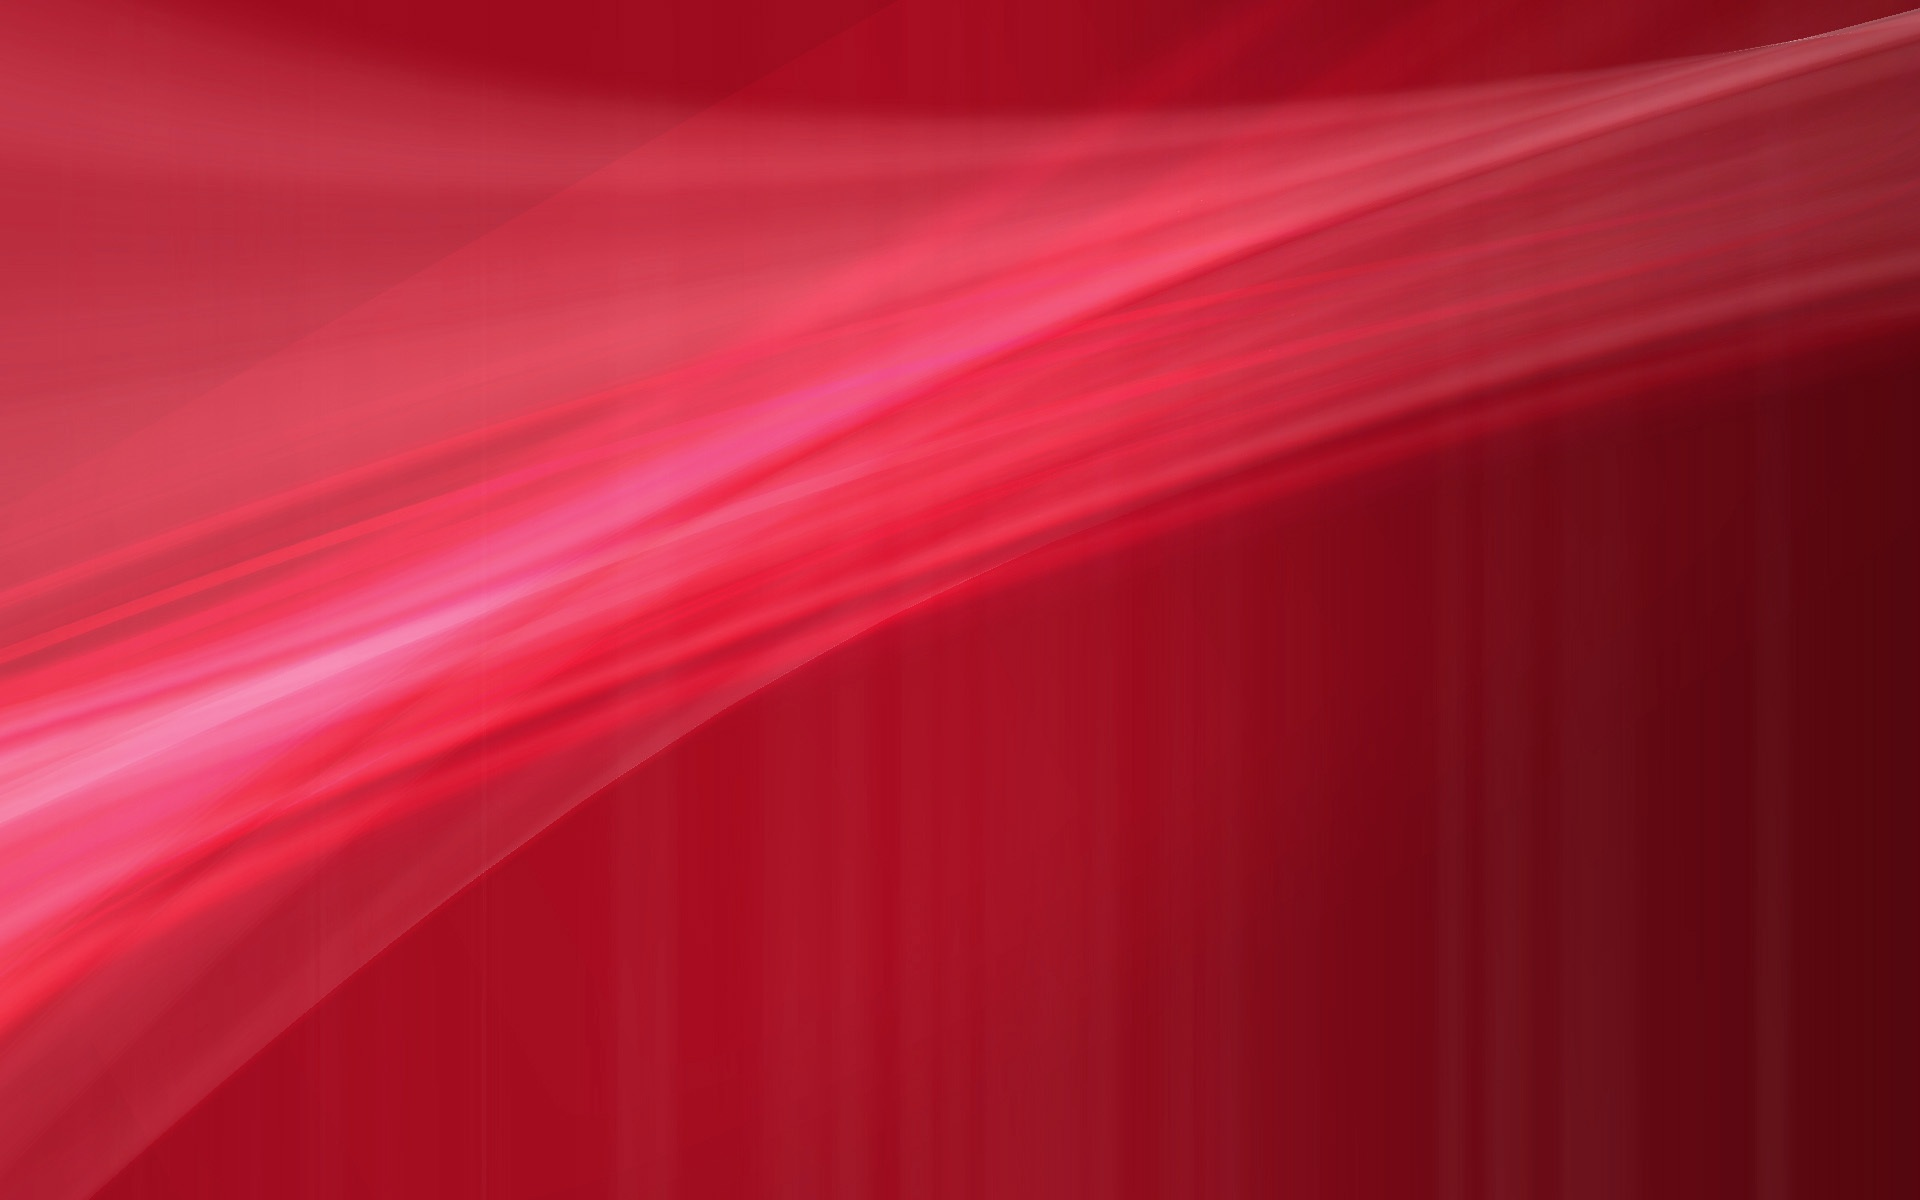 Wallpaper Hd Red